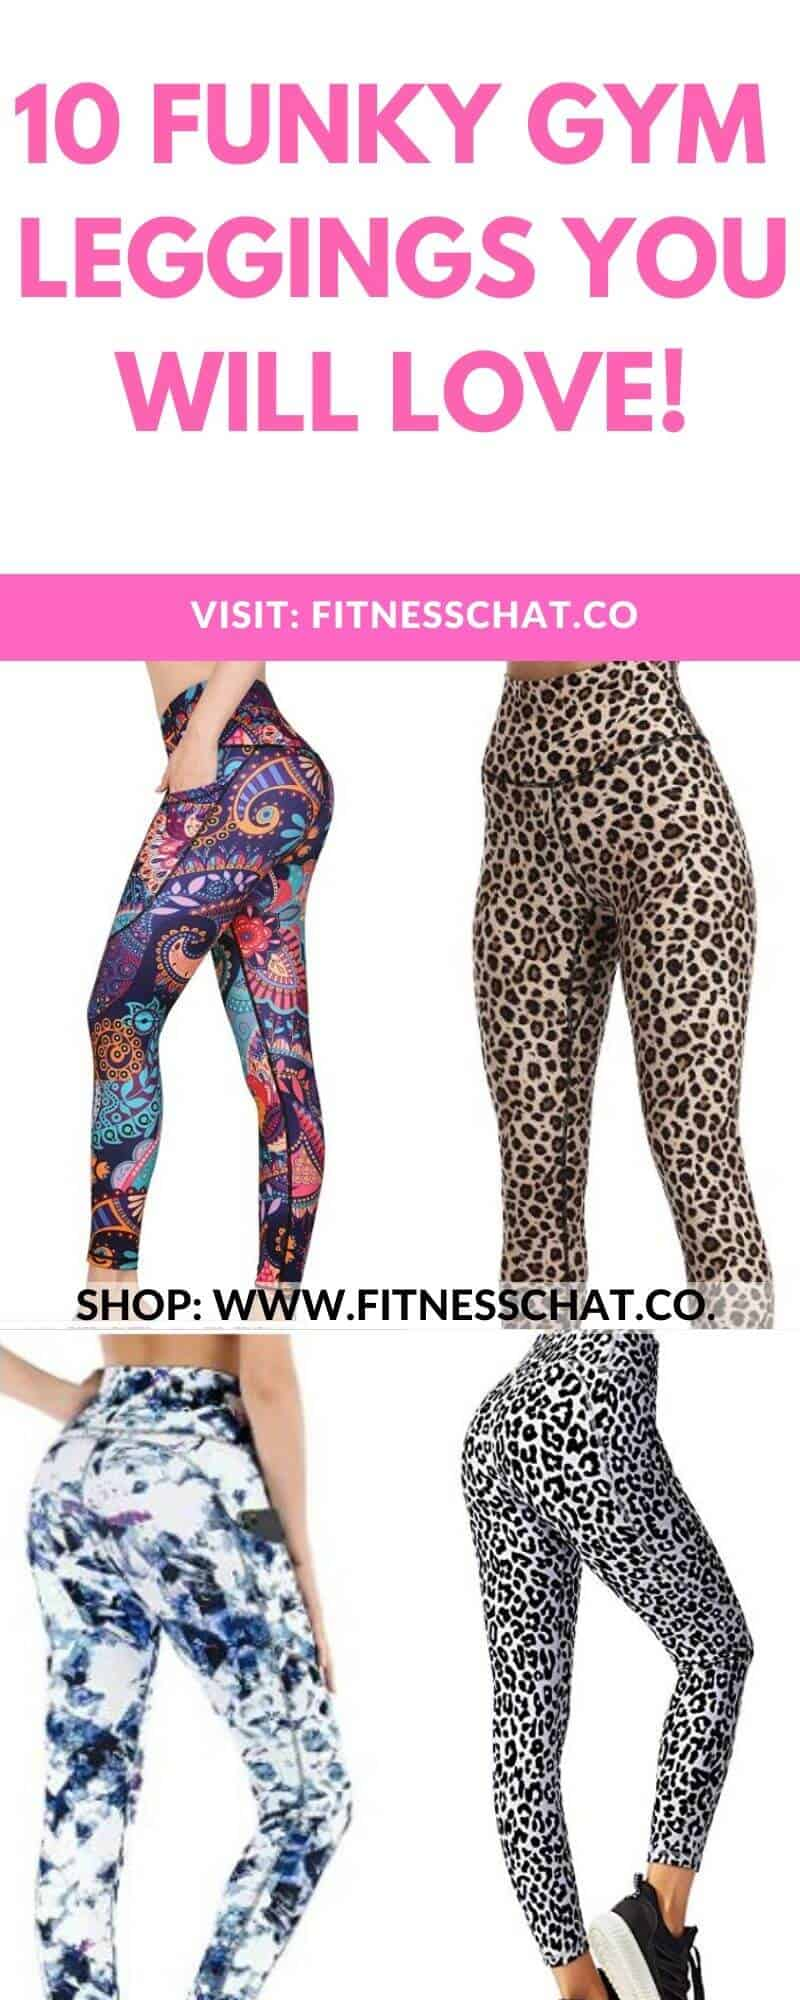 Funky gym Leggings That will Make You Want to Hit the Gym